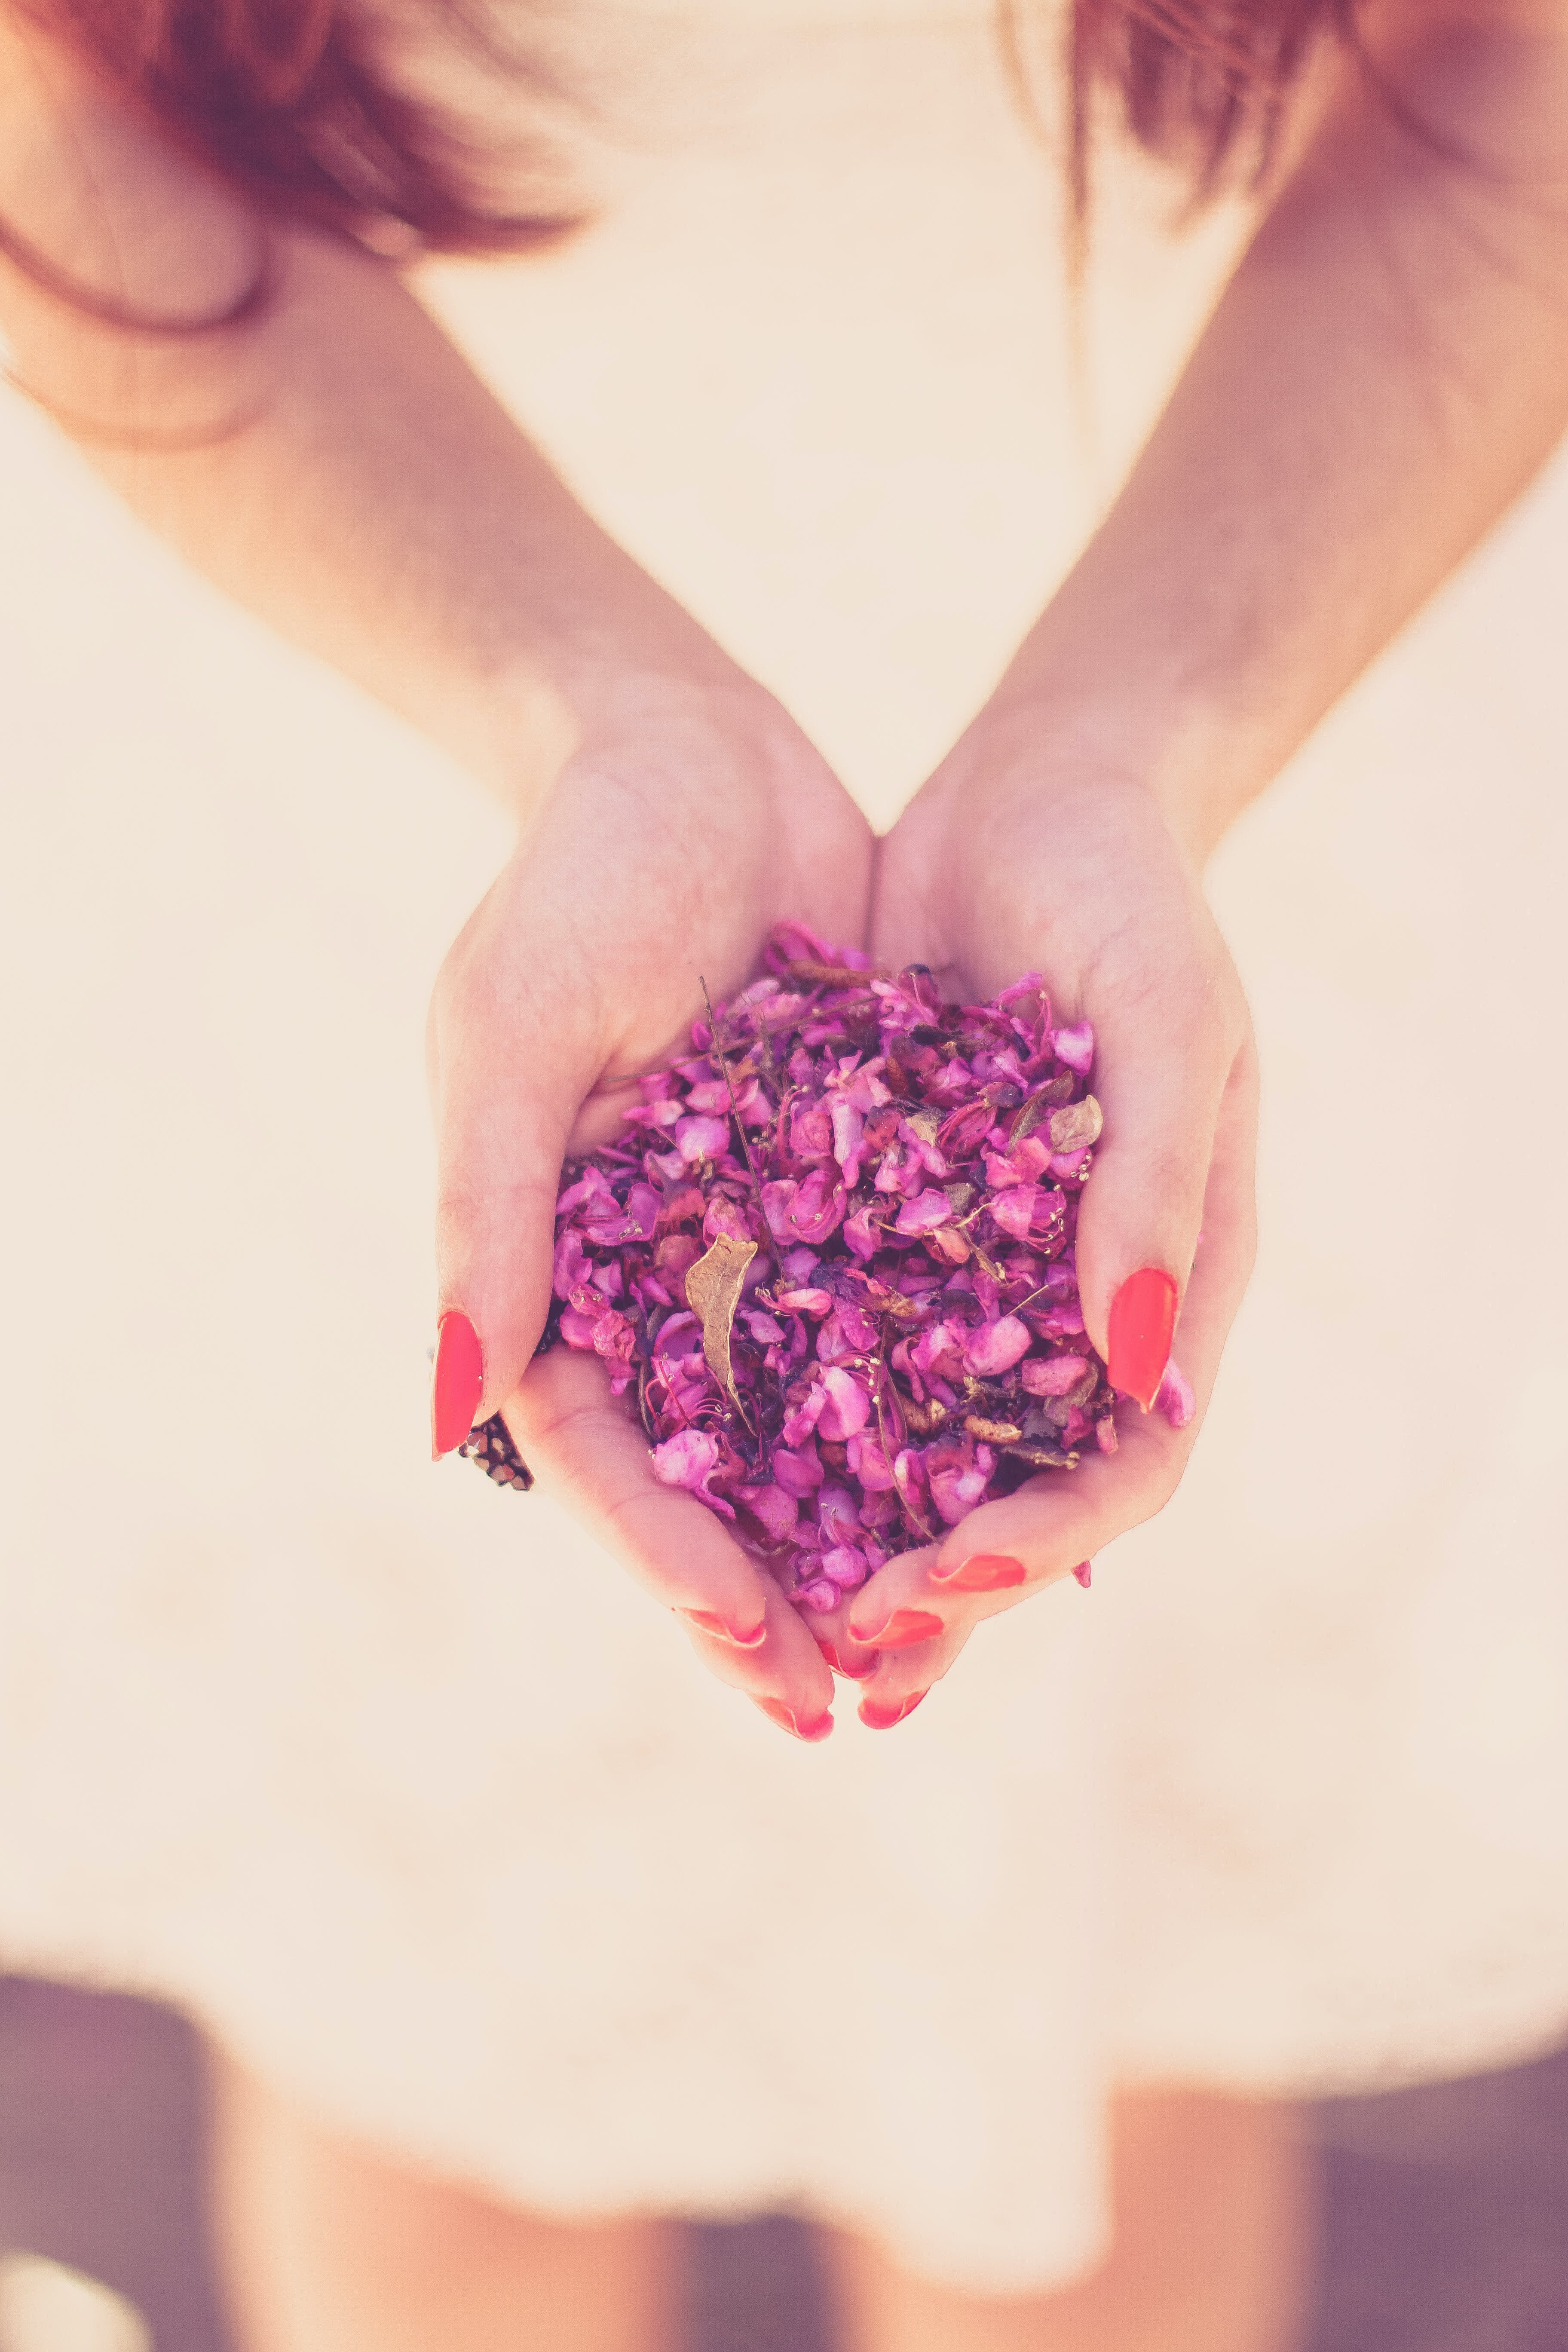 Close-up Photography of Person Holding Pink Petals